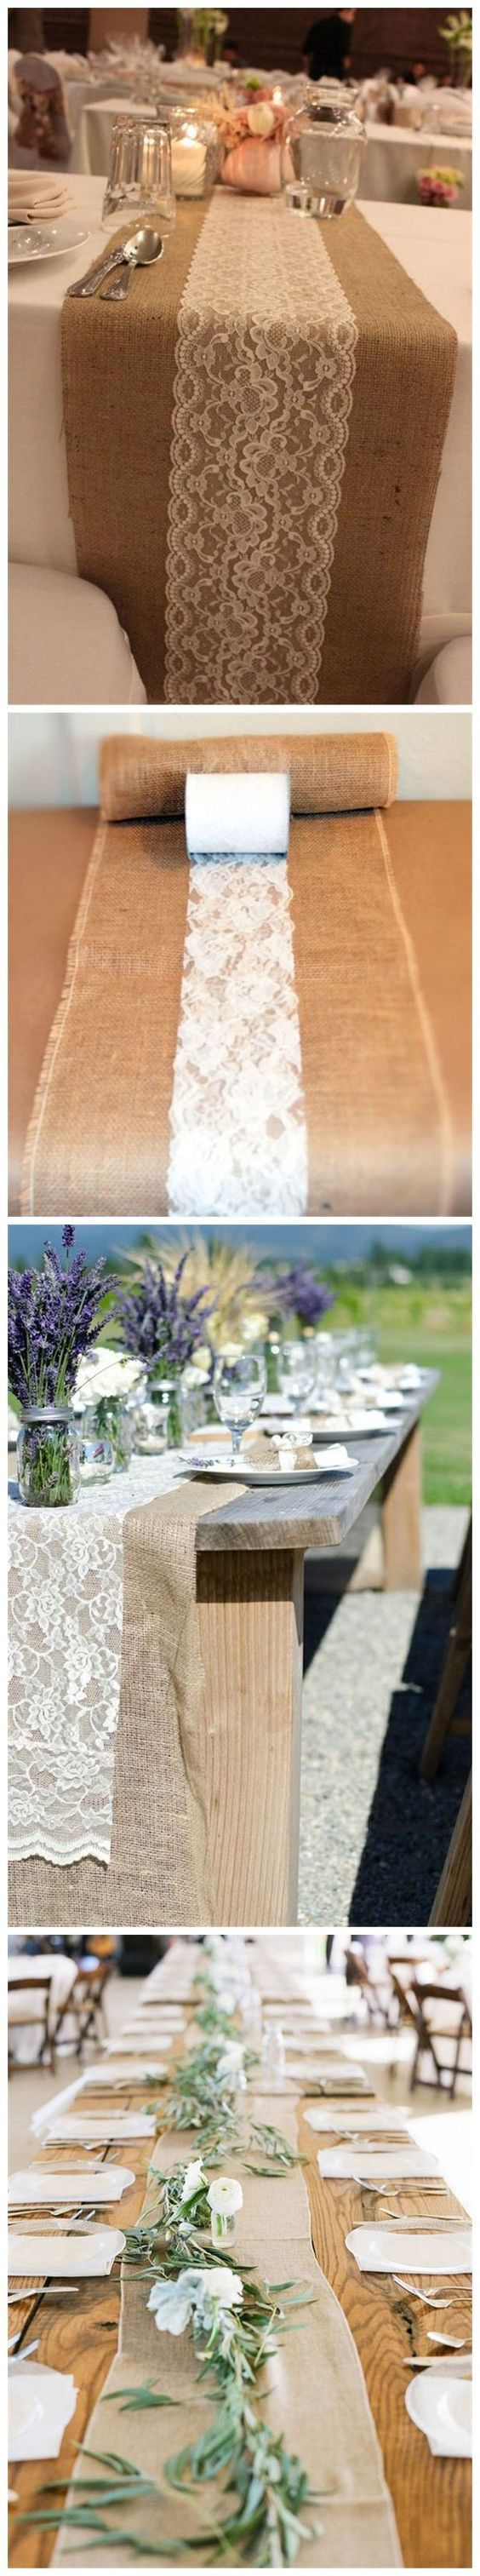 22 Rustic Burlap Wedding Table Runner Ideas You Will Love – Sherin Brown